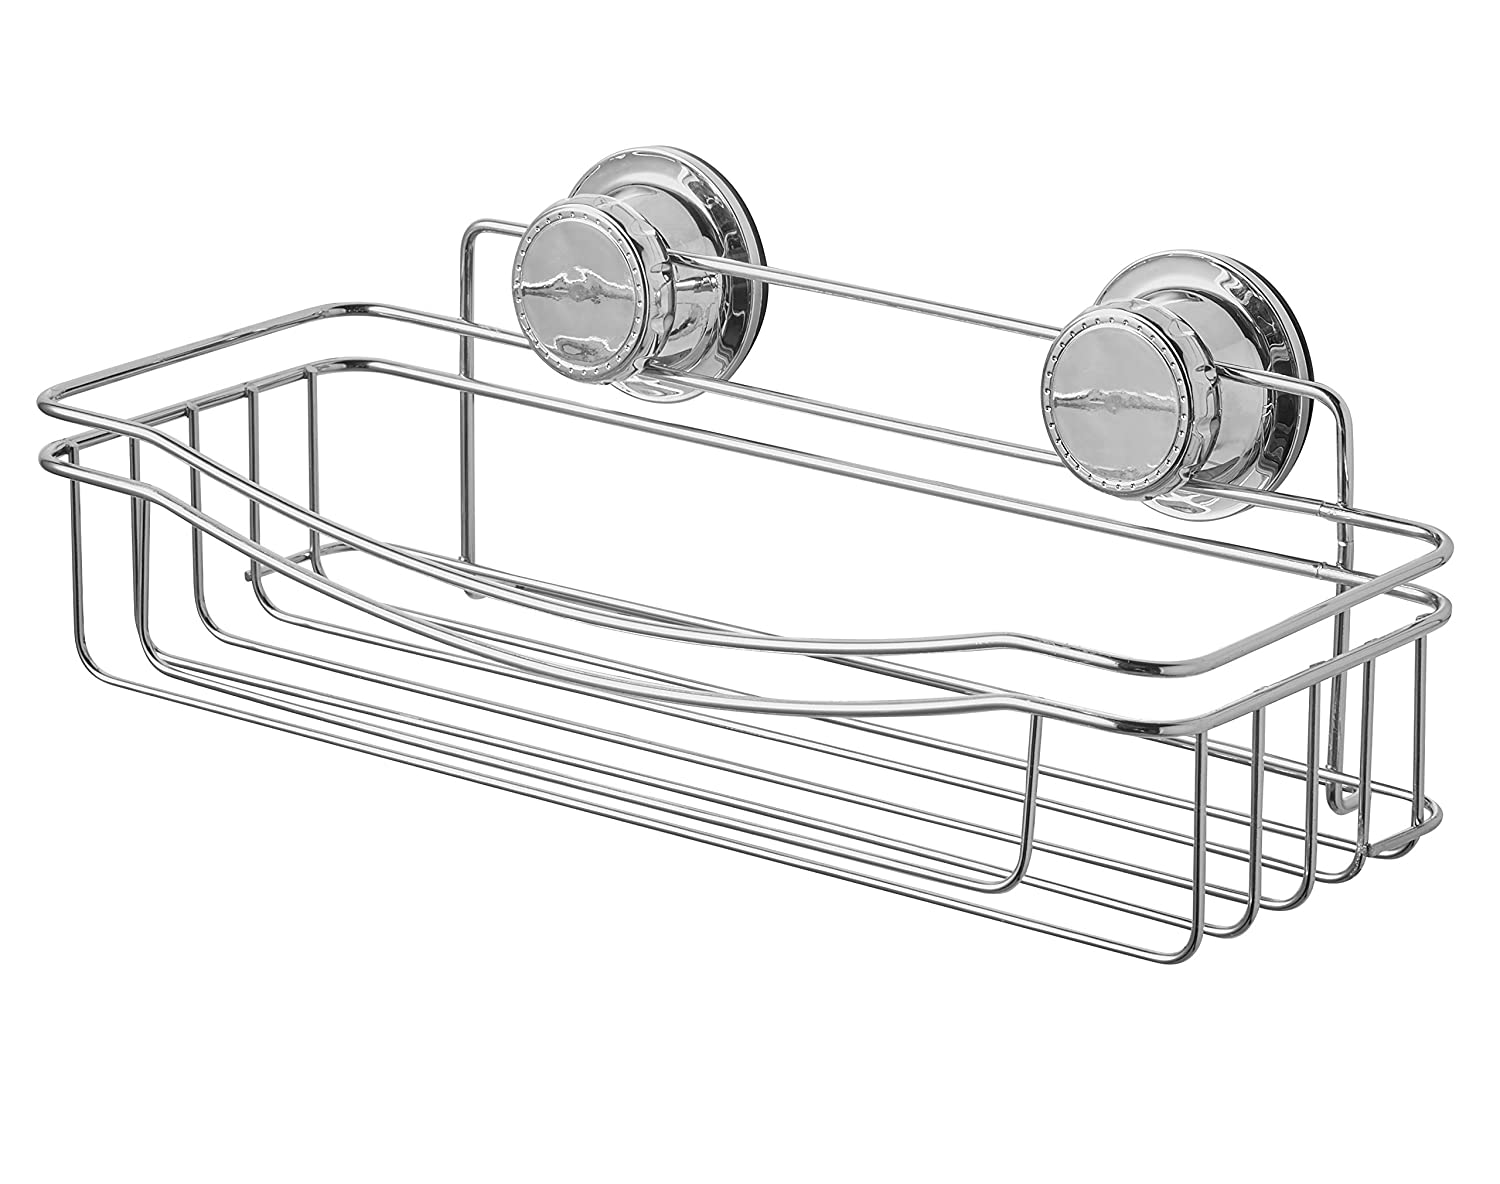 Bathroom Organizer Shelf Extra Strong Suction Cup Curved Front Shower Caddy BM Home Chrome Rust Proof